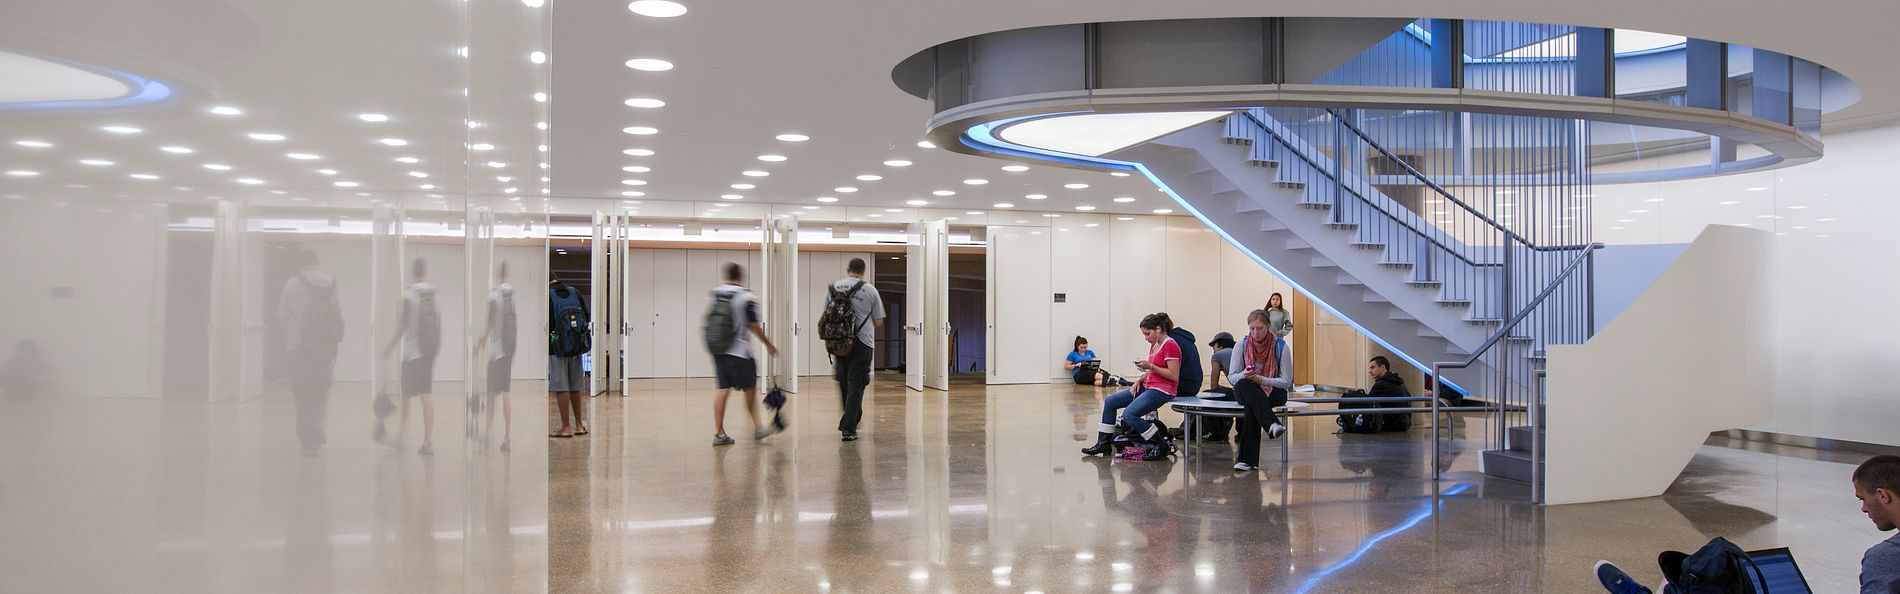 Genome Science Building lecture hall lobby